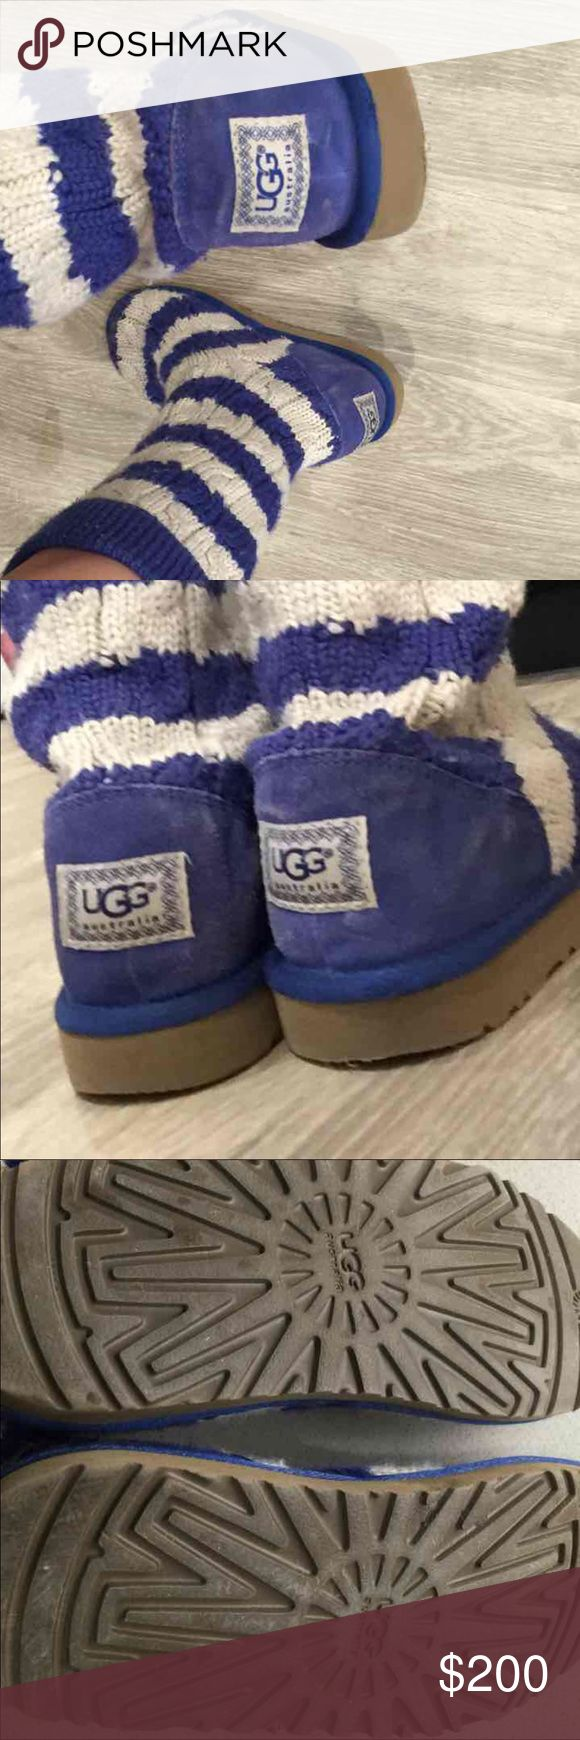 Comfy cozy uggs Cozy comfy tall Wool blue and white ugg boots. In good, used condition - no major flaws.   Size 4 (fits large - could fit a woman's 5/6)   Moving & must go. Feel free to make an offer and we can negotiate on a price we both are happy with  UGG Shoes Boots